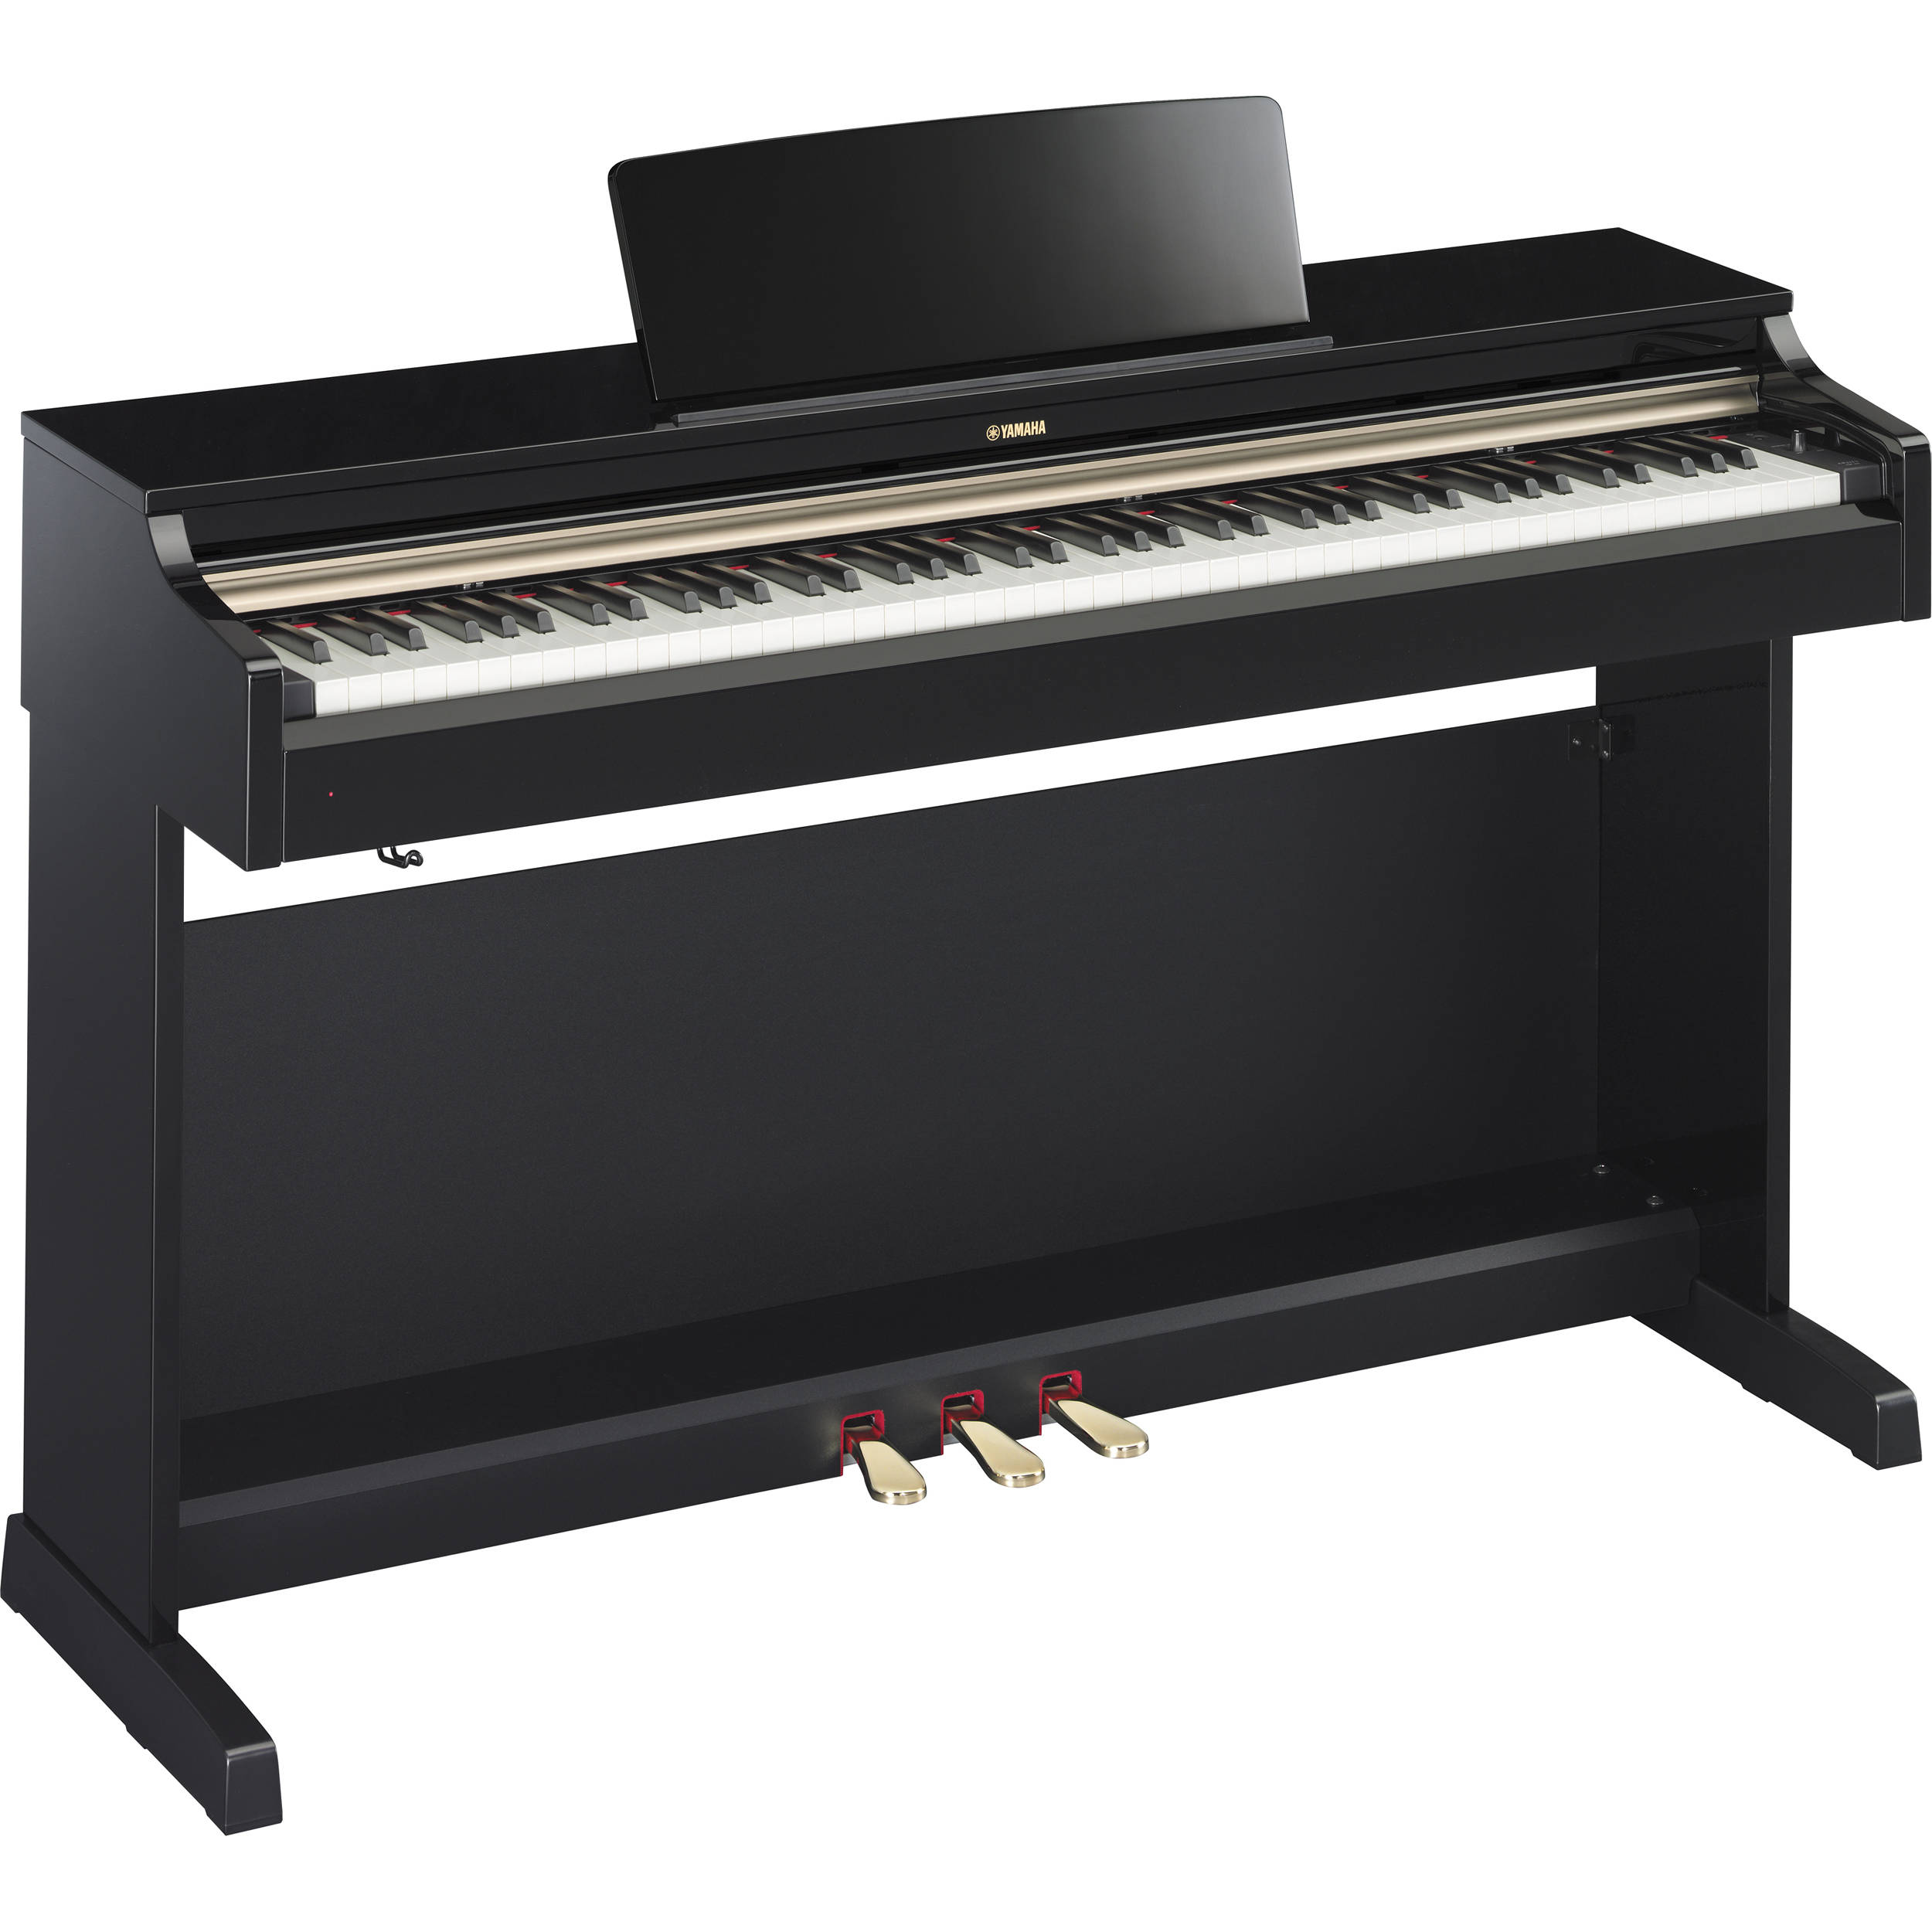 yamaha arius ydp 162pe digital piano polished ebony ydp162pe. Black Bedroom Furniture Sets. Home Design Ideas